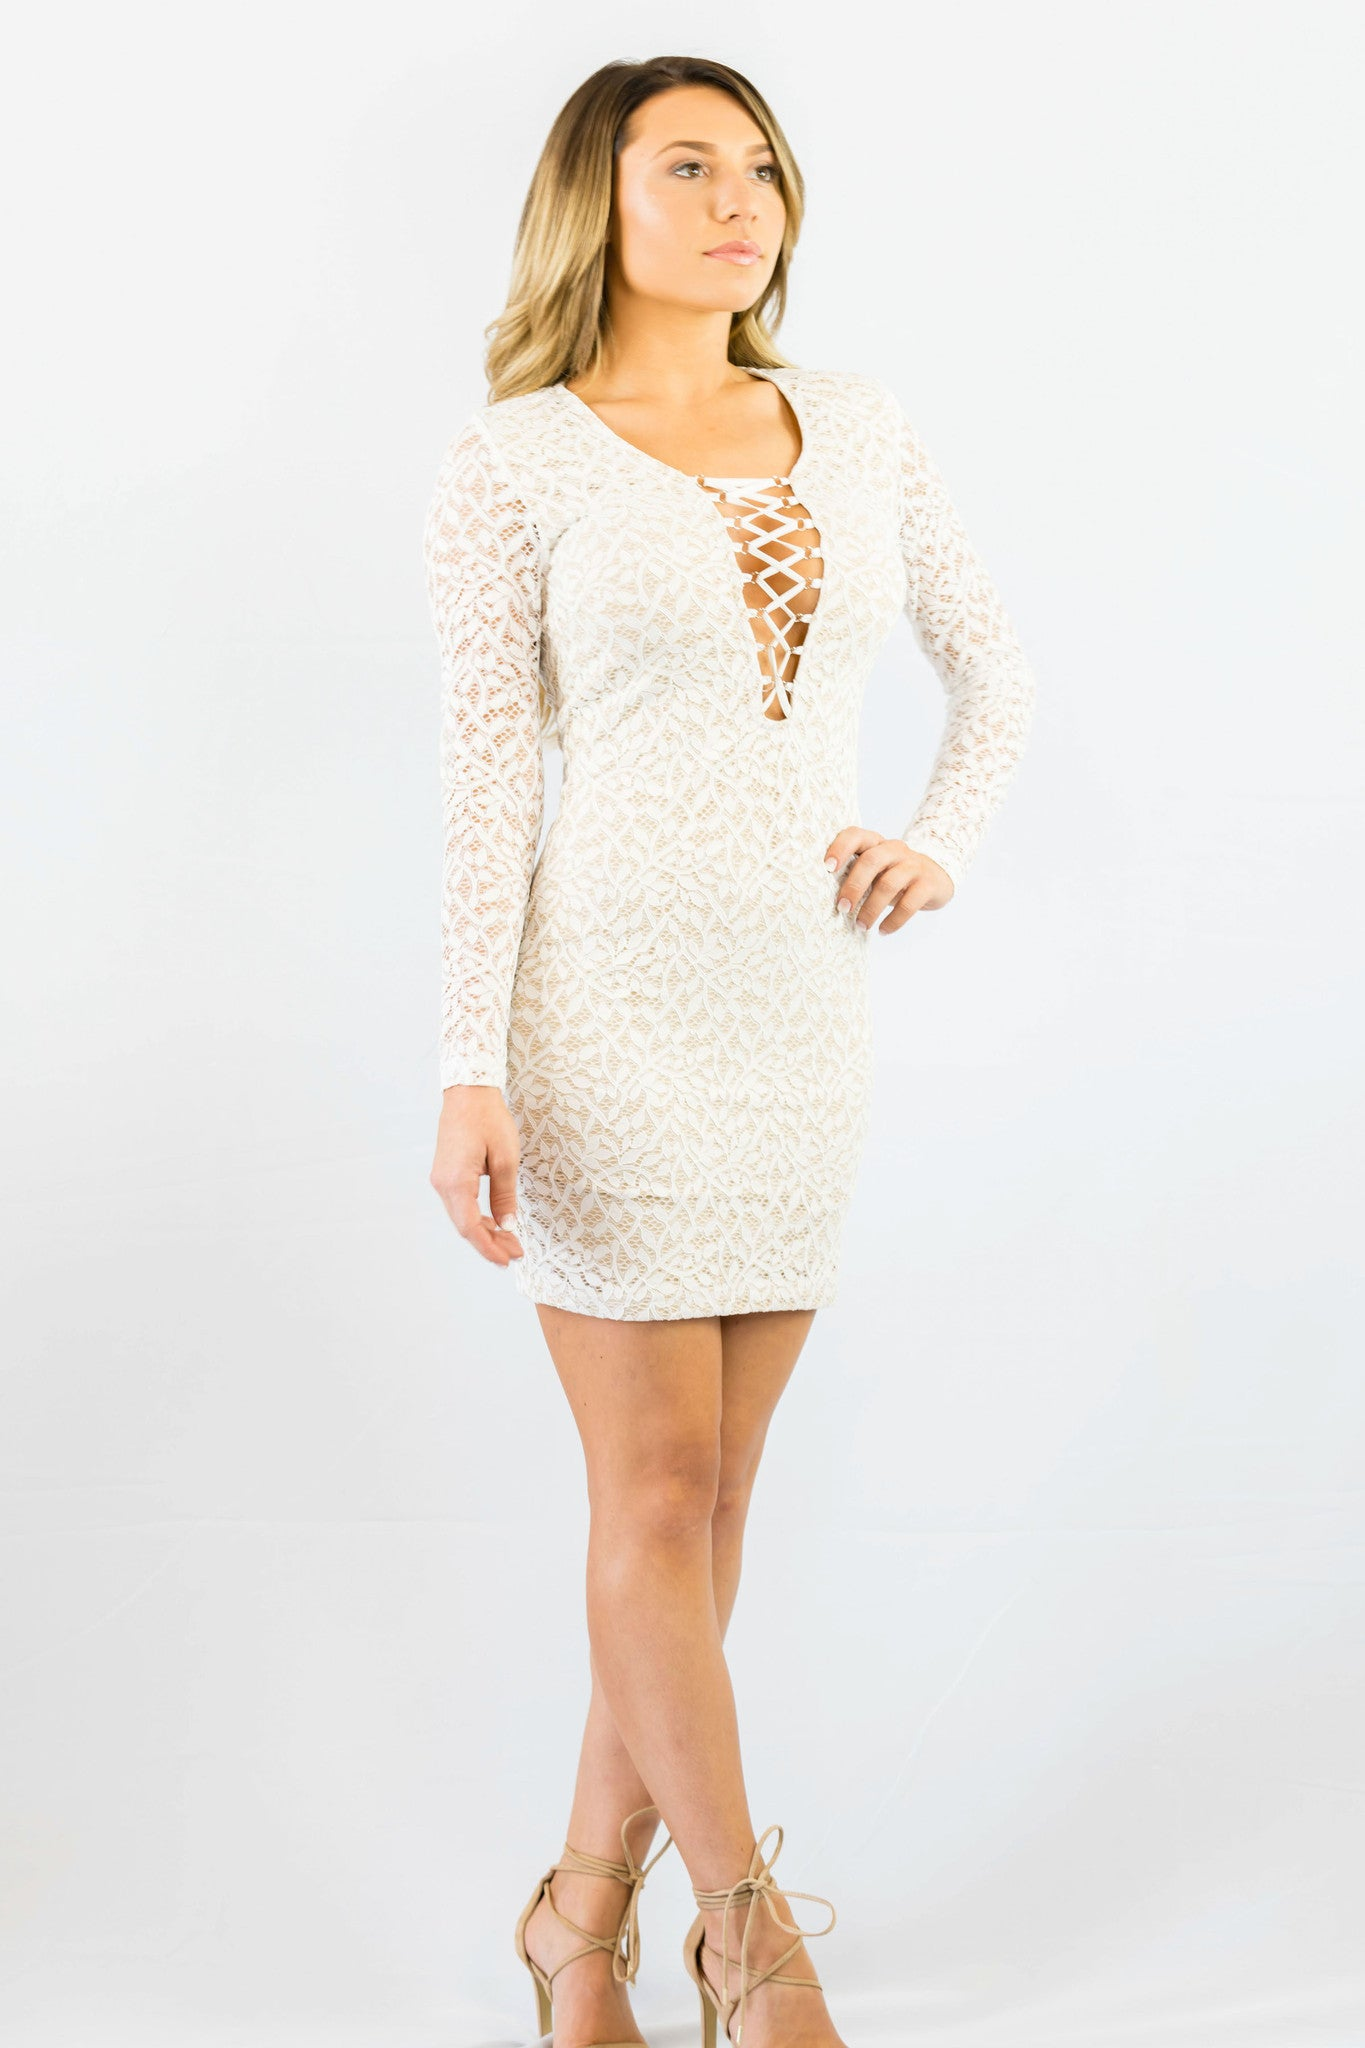 WYLDR In Too Deep Ivory Lace Bodycon Dress White - DRESSES - WYLDR - Free Vibrationz - 4